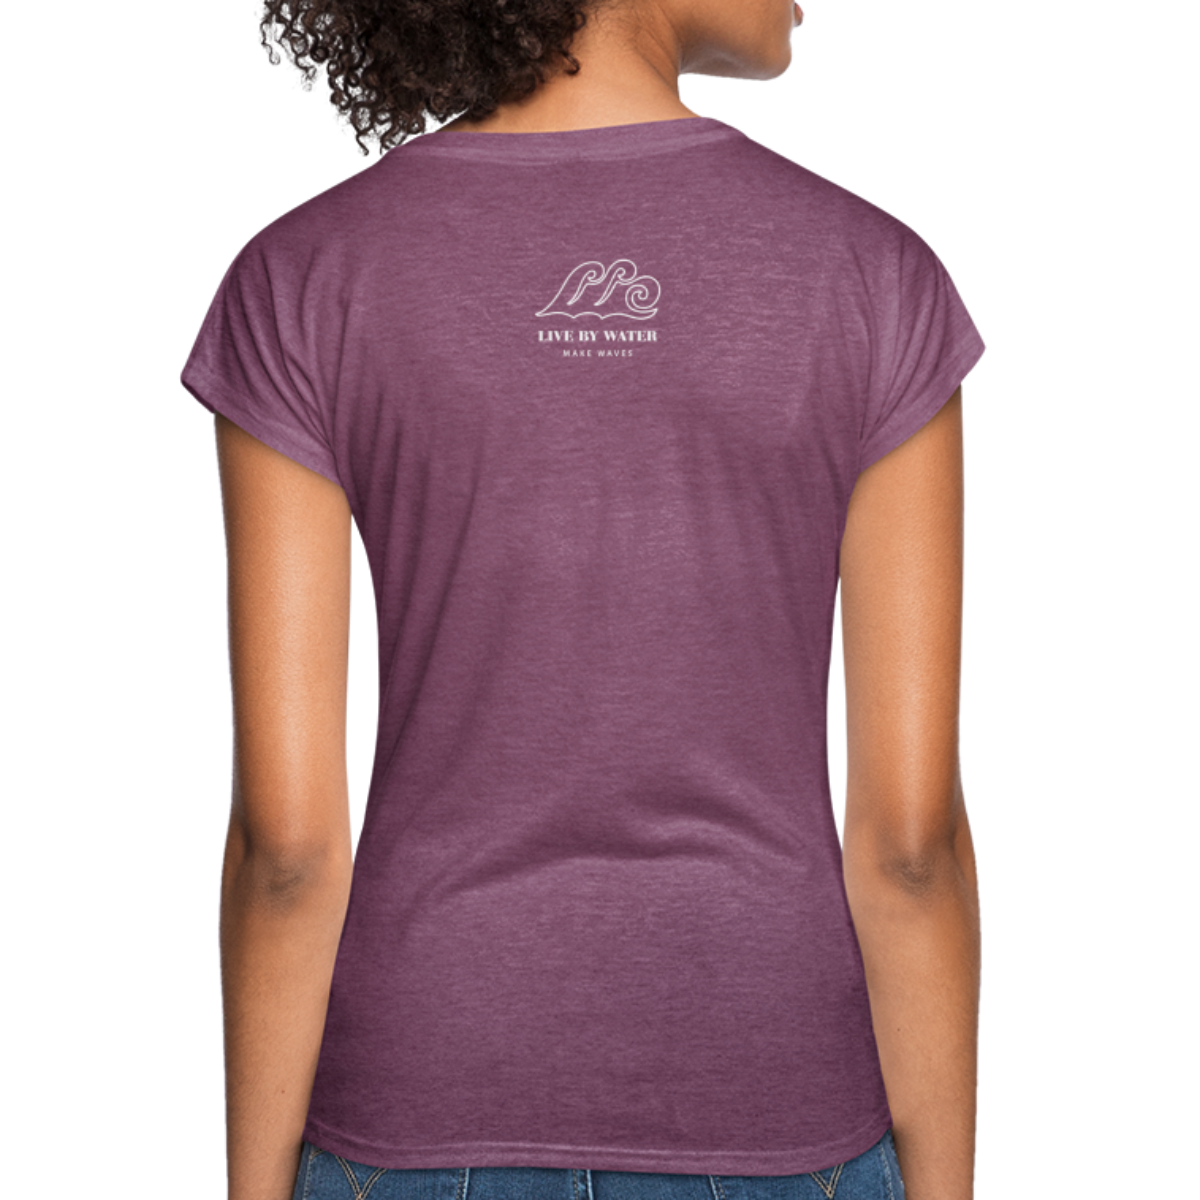 Be Inspired by the Water-Women's 2-sided V-Neck T